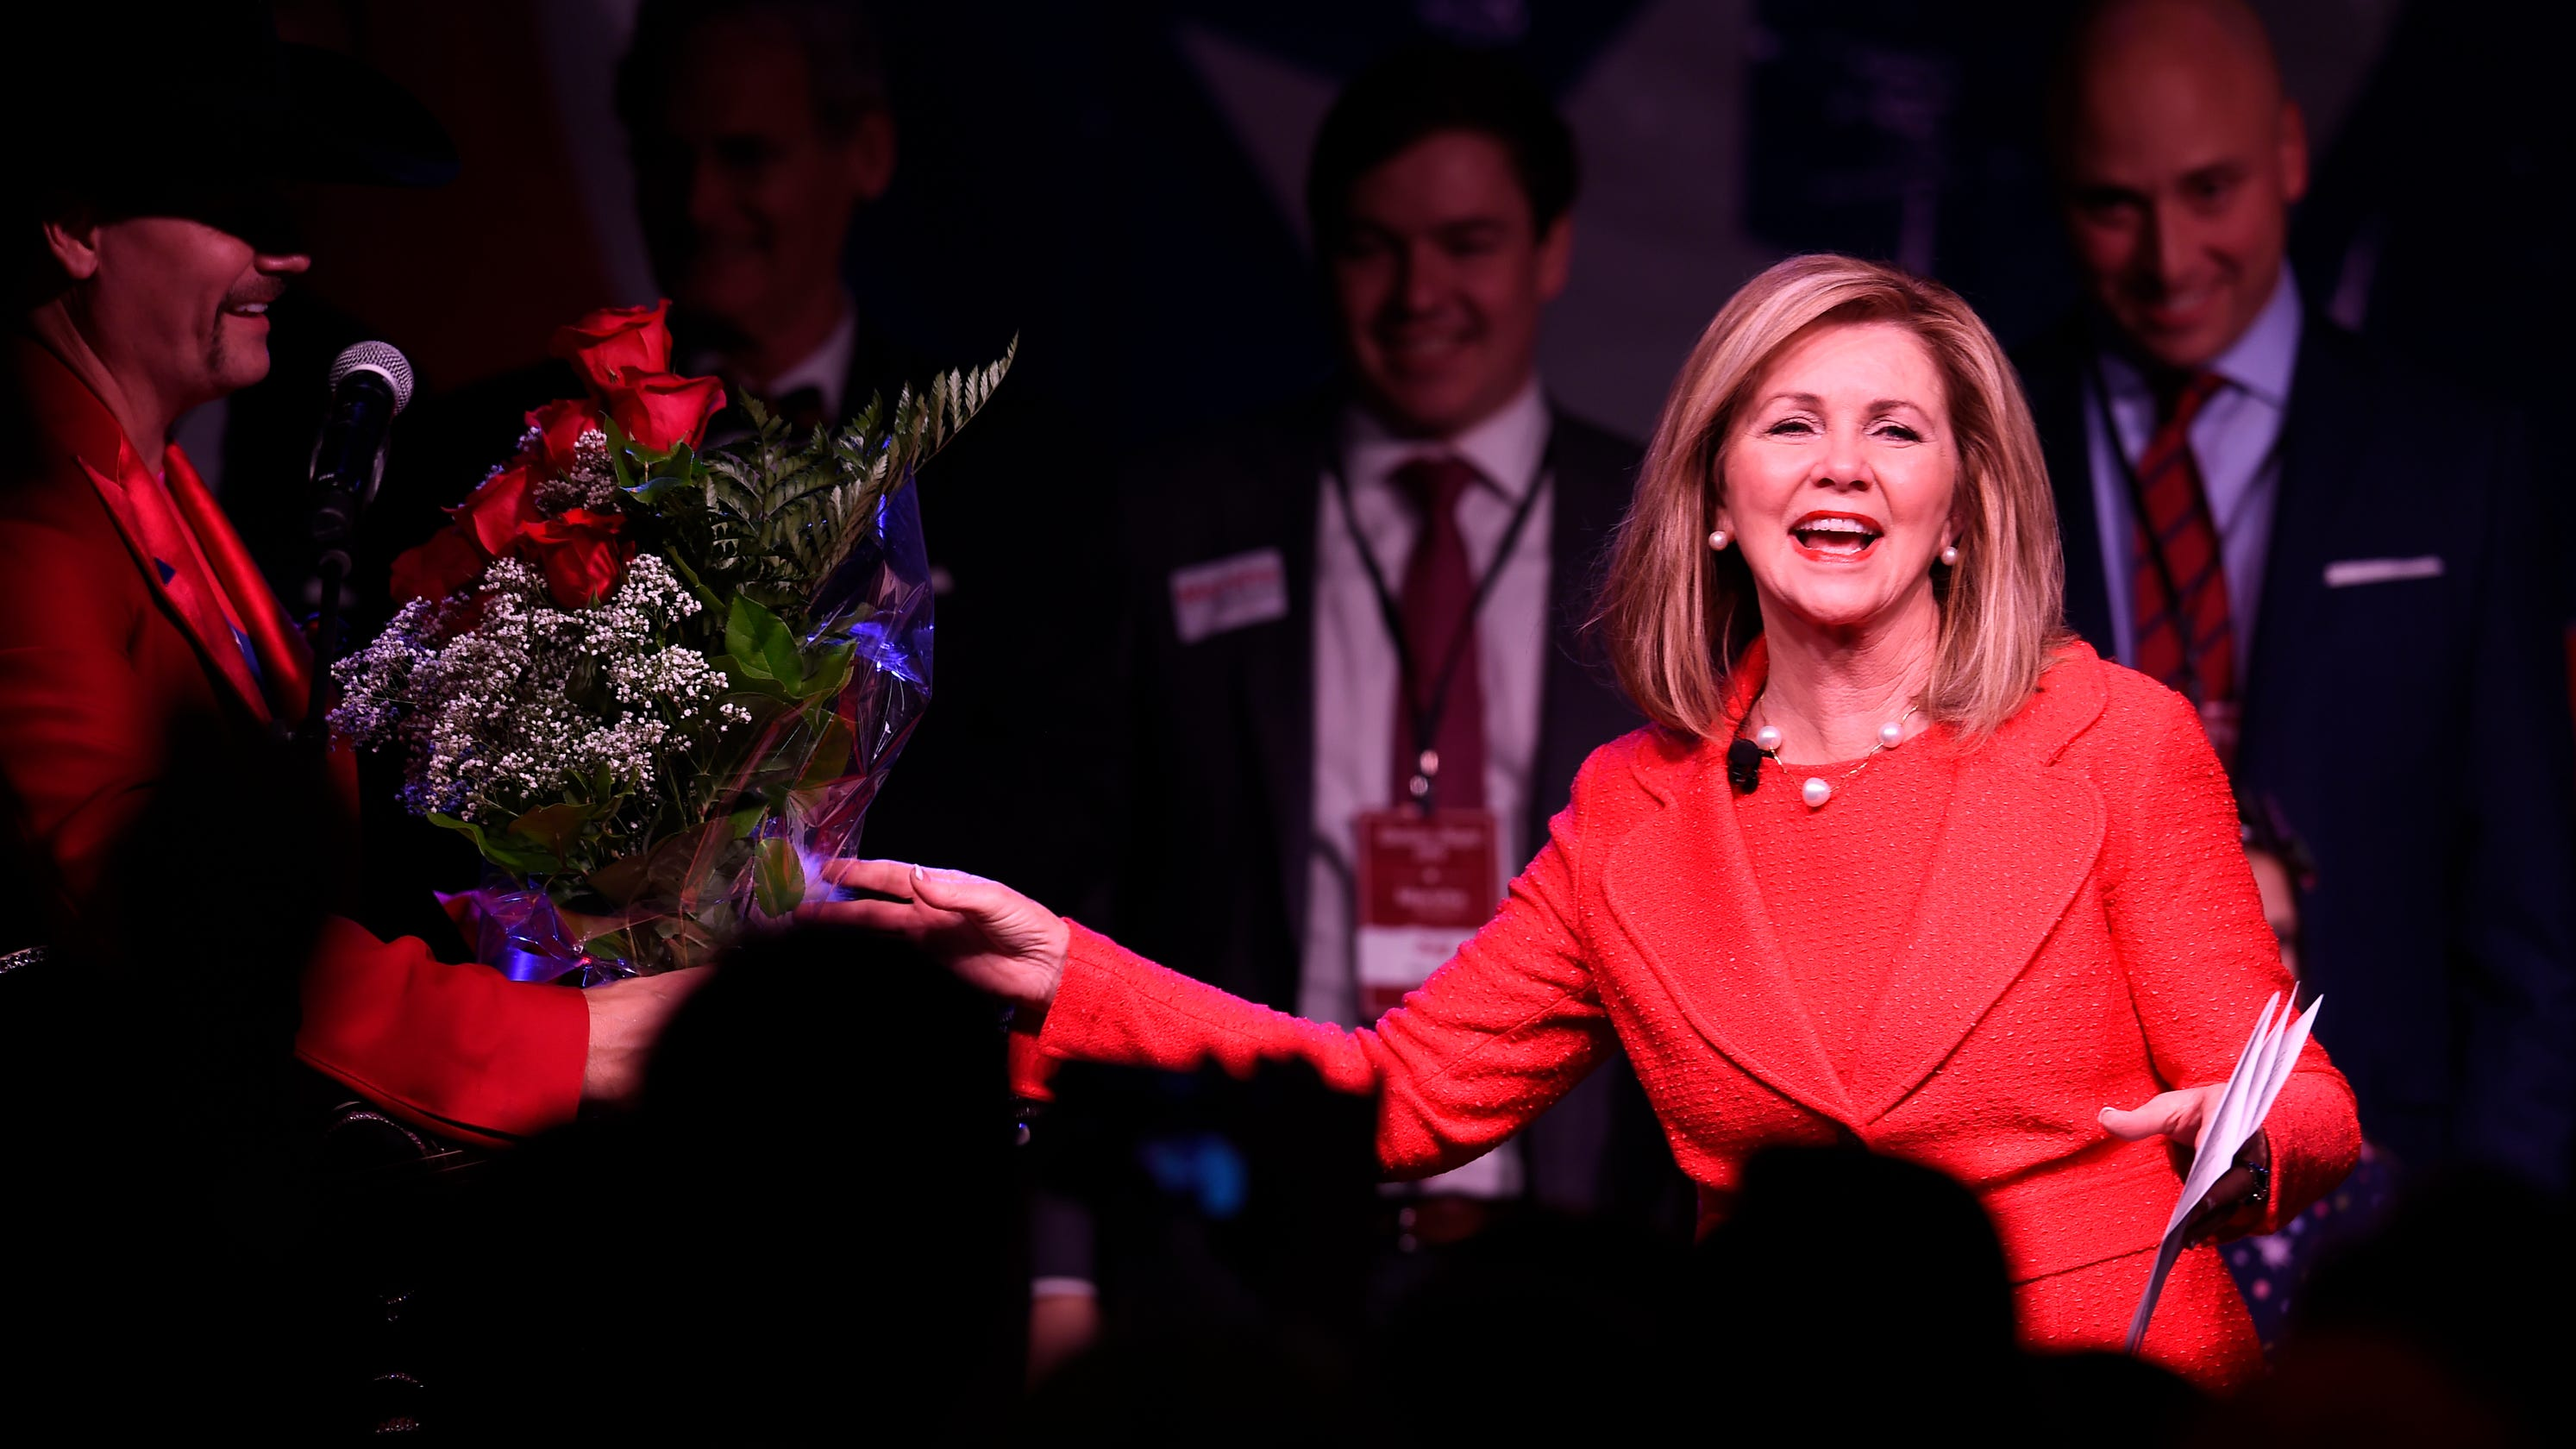 Tennessee elections: How Blackburn won and what it means for Tennessee